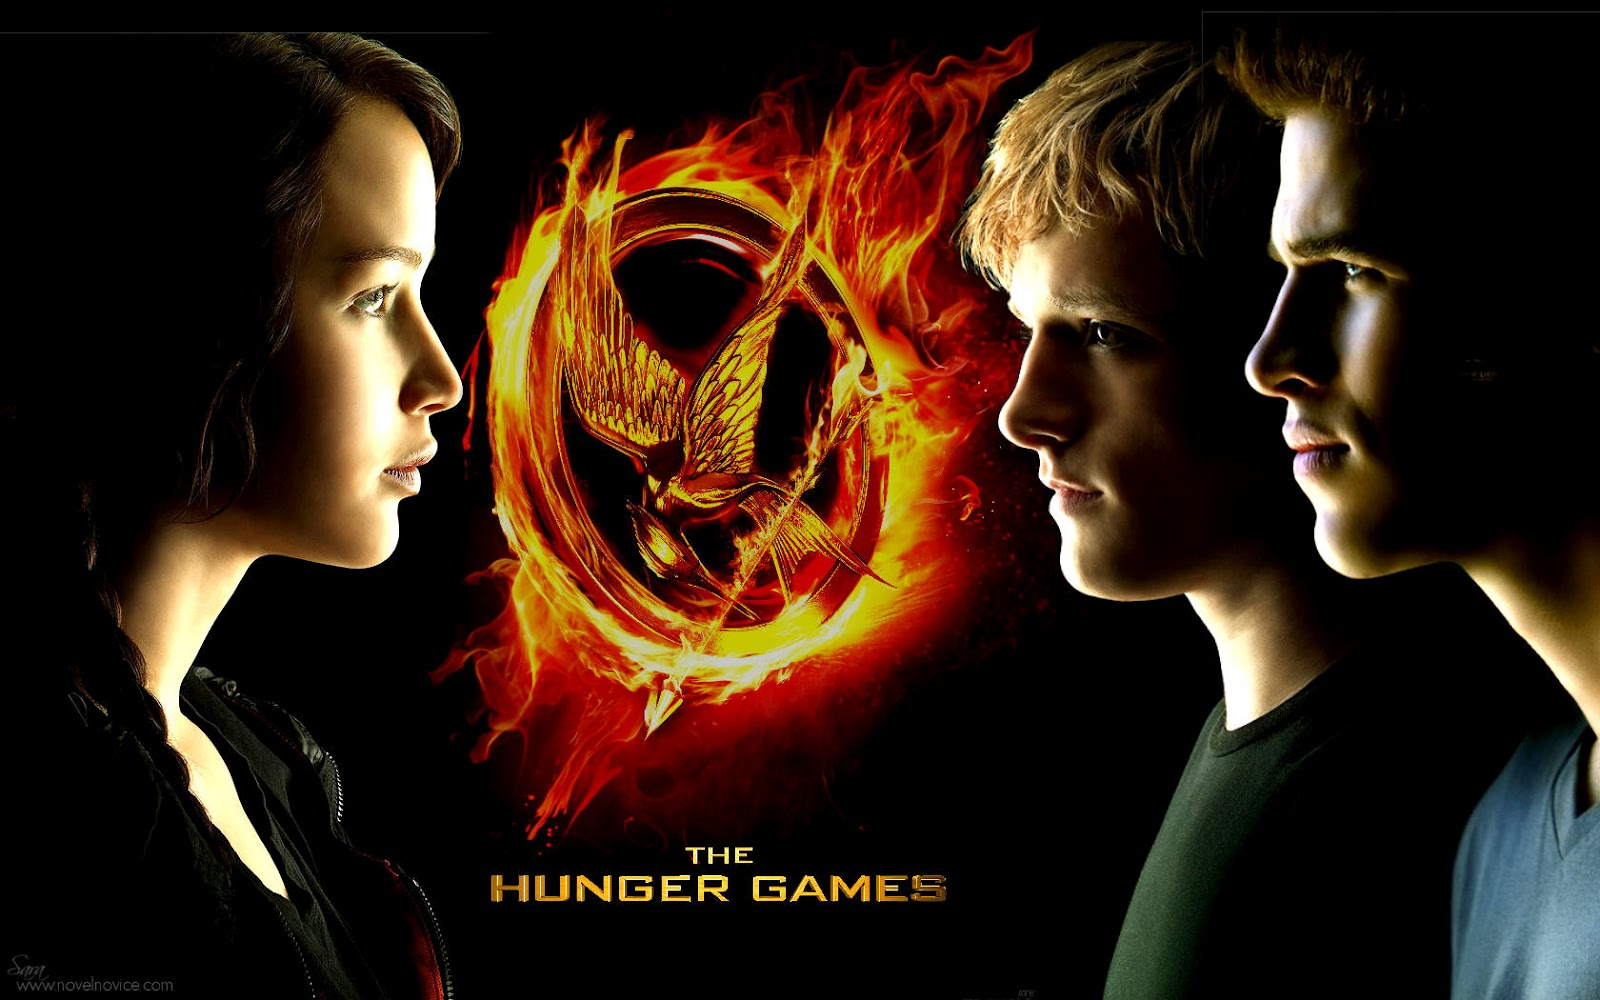 http://4.bp.blogspot.com/-C9JgfmF2FdY/T1Nh4yrtIlI/AAAAAAAAB_8/oSWo2WnTrnw/s1600/hunger-games-movie-wp_trio01.jpg